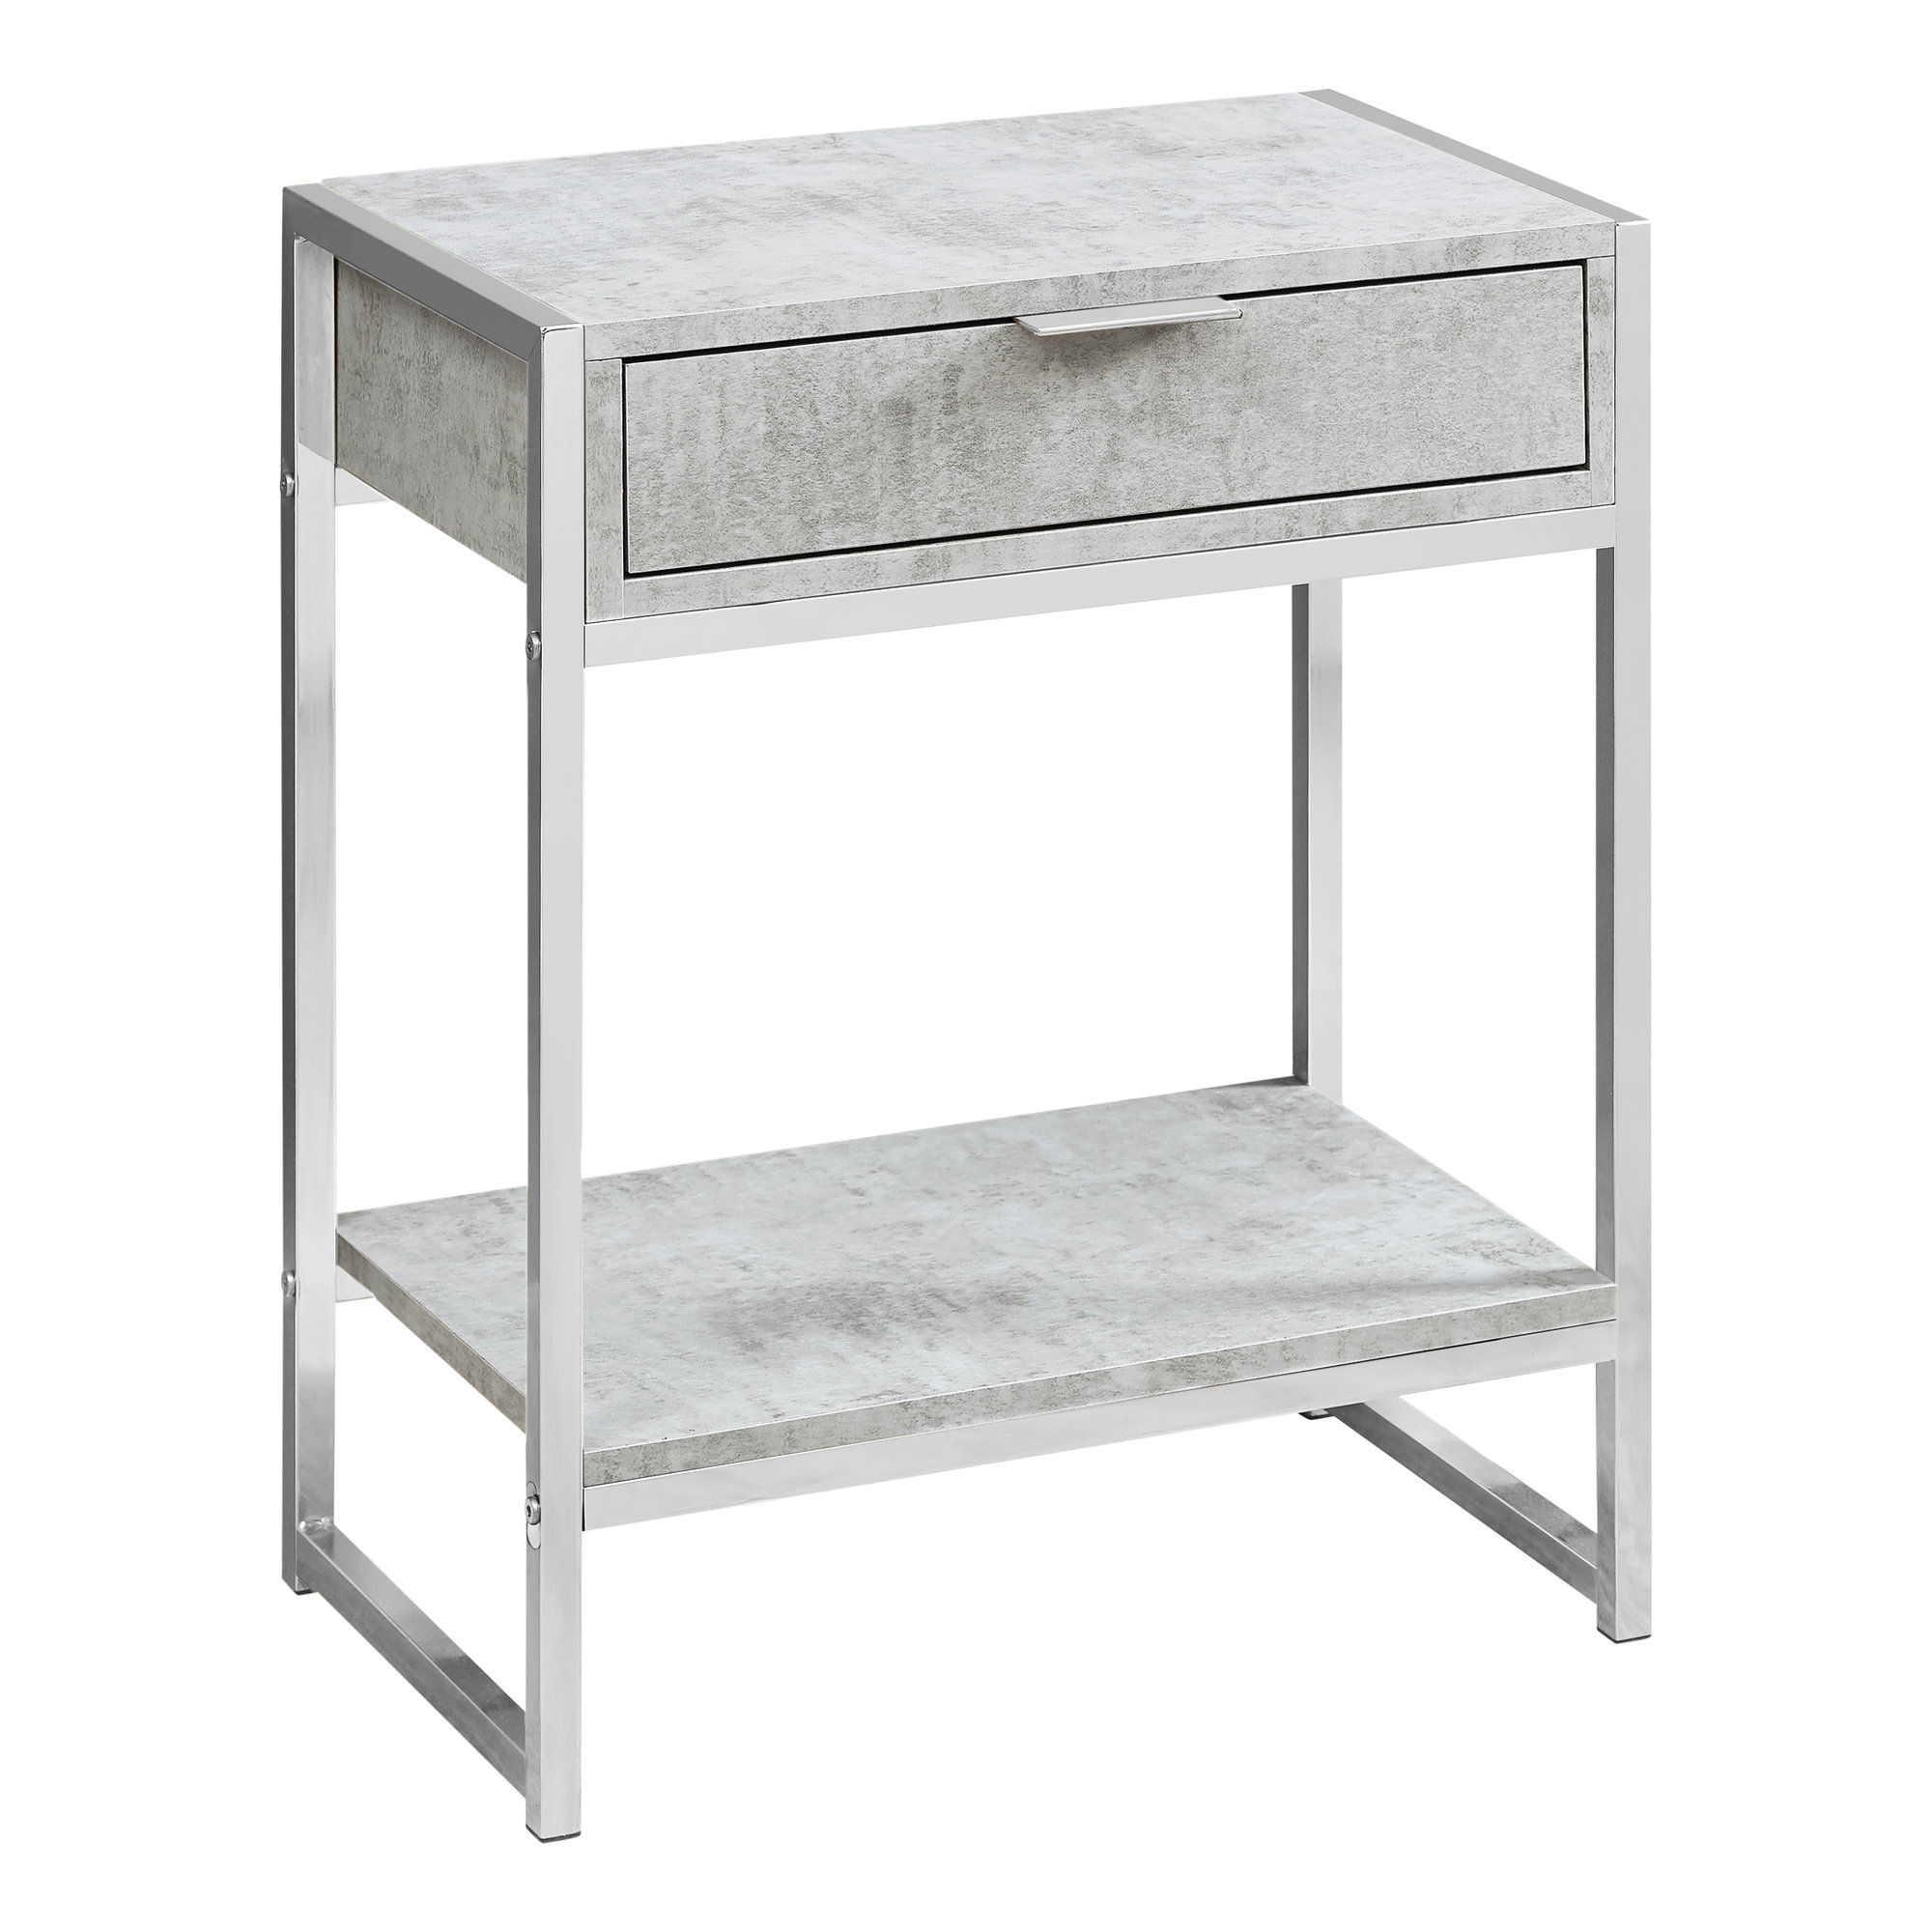 monarch specialties grey cement drawer accent table the classy home mnc click enlarge outdoor furniture couch clear ashley high top dining gear lamp large corner white and bedside